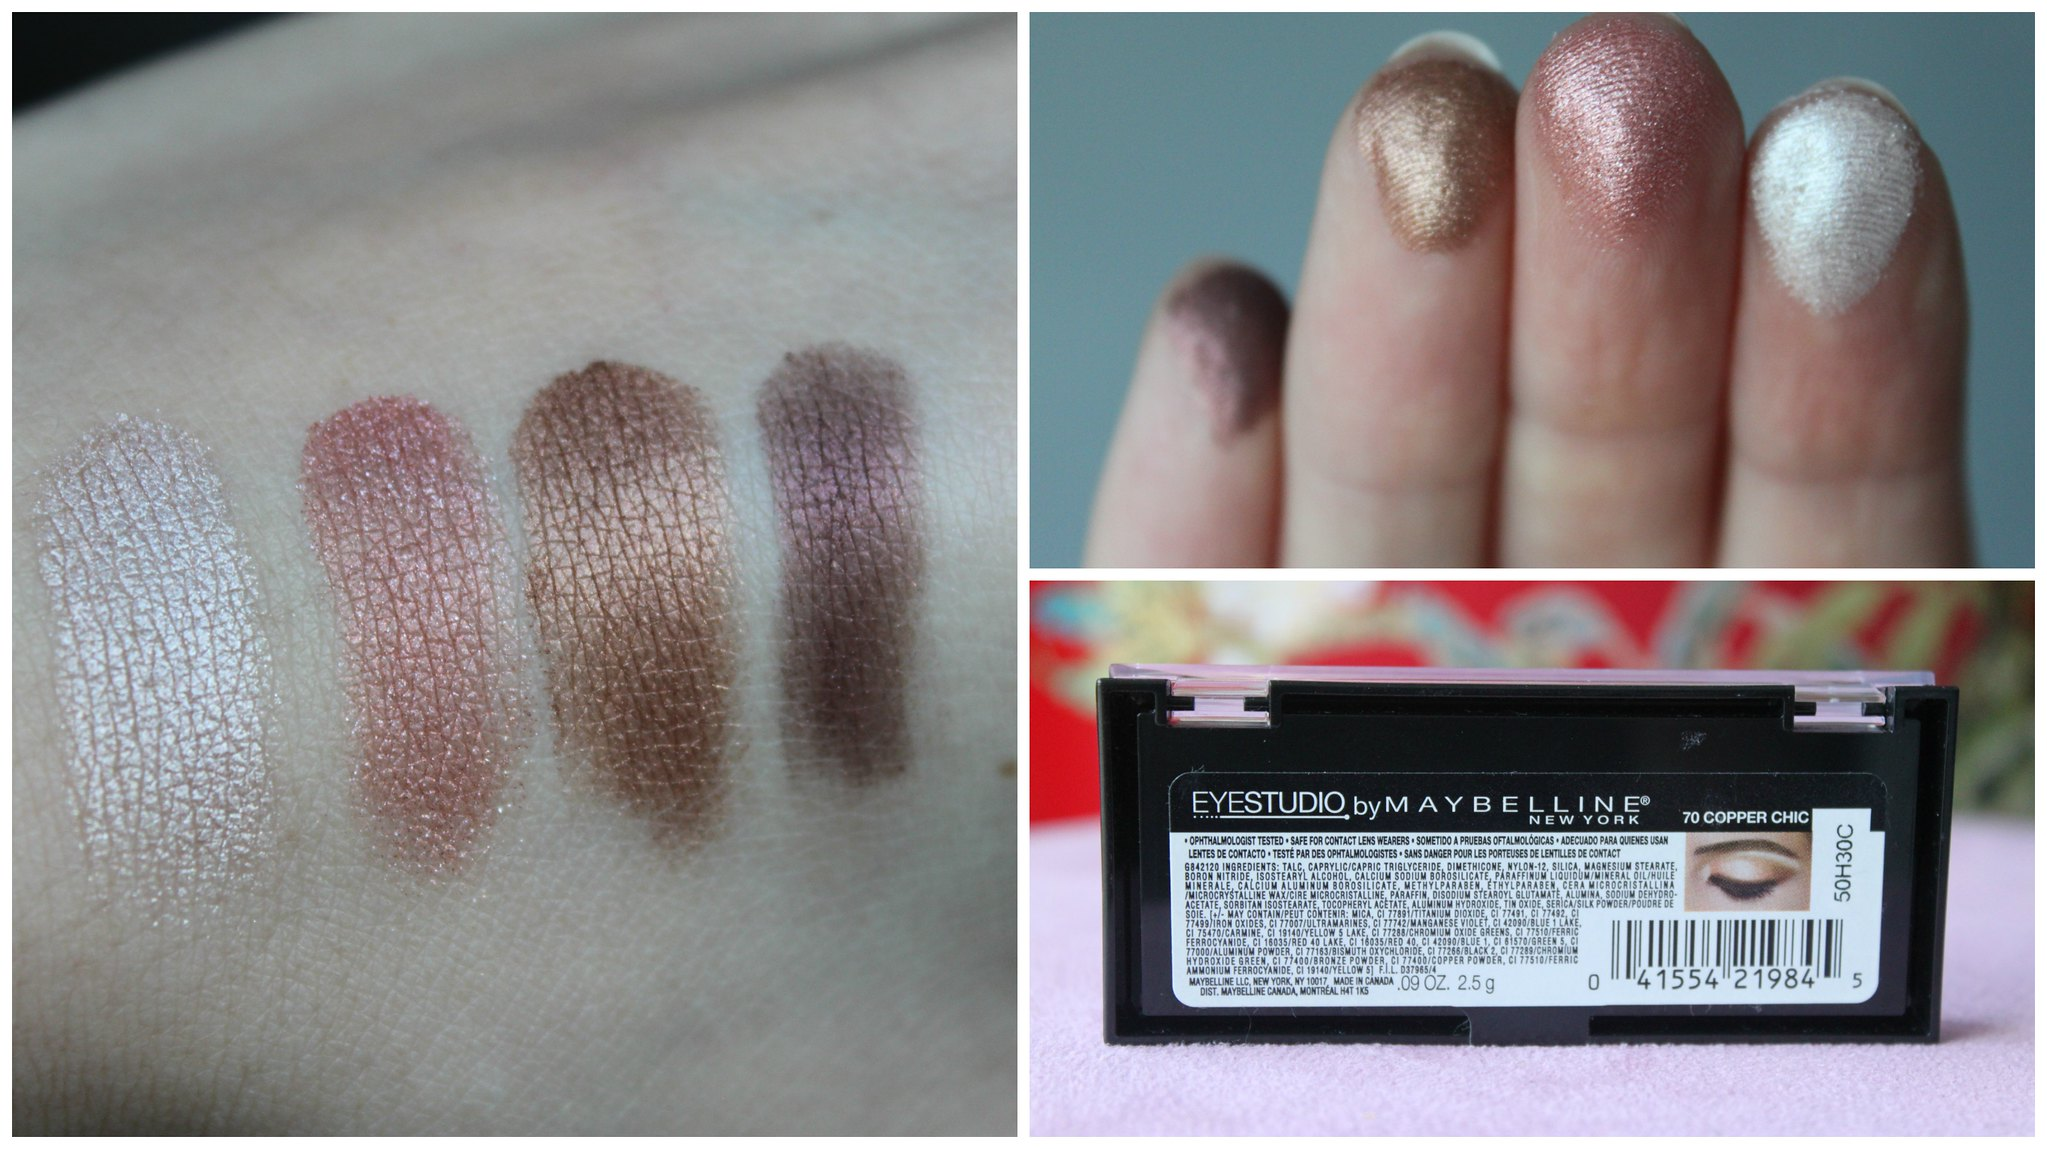 Australian beauty review ausbeautyreview blog blogger aussie Maybelline Eye Studio shadow copper chic drugstore eyeshadow neutral pretty shimmer long lasting priceline swatch